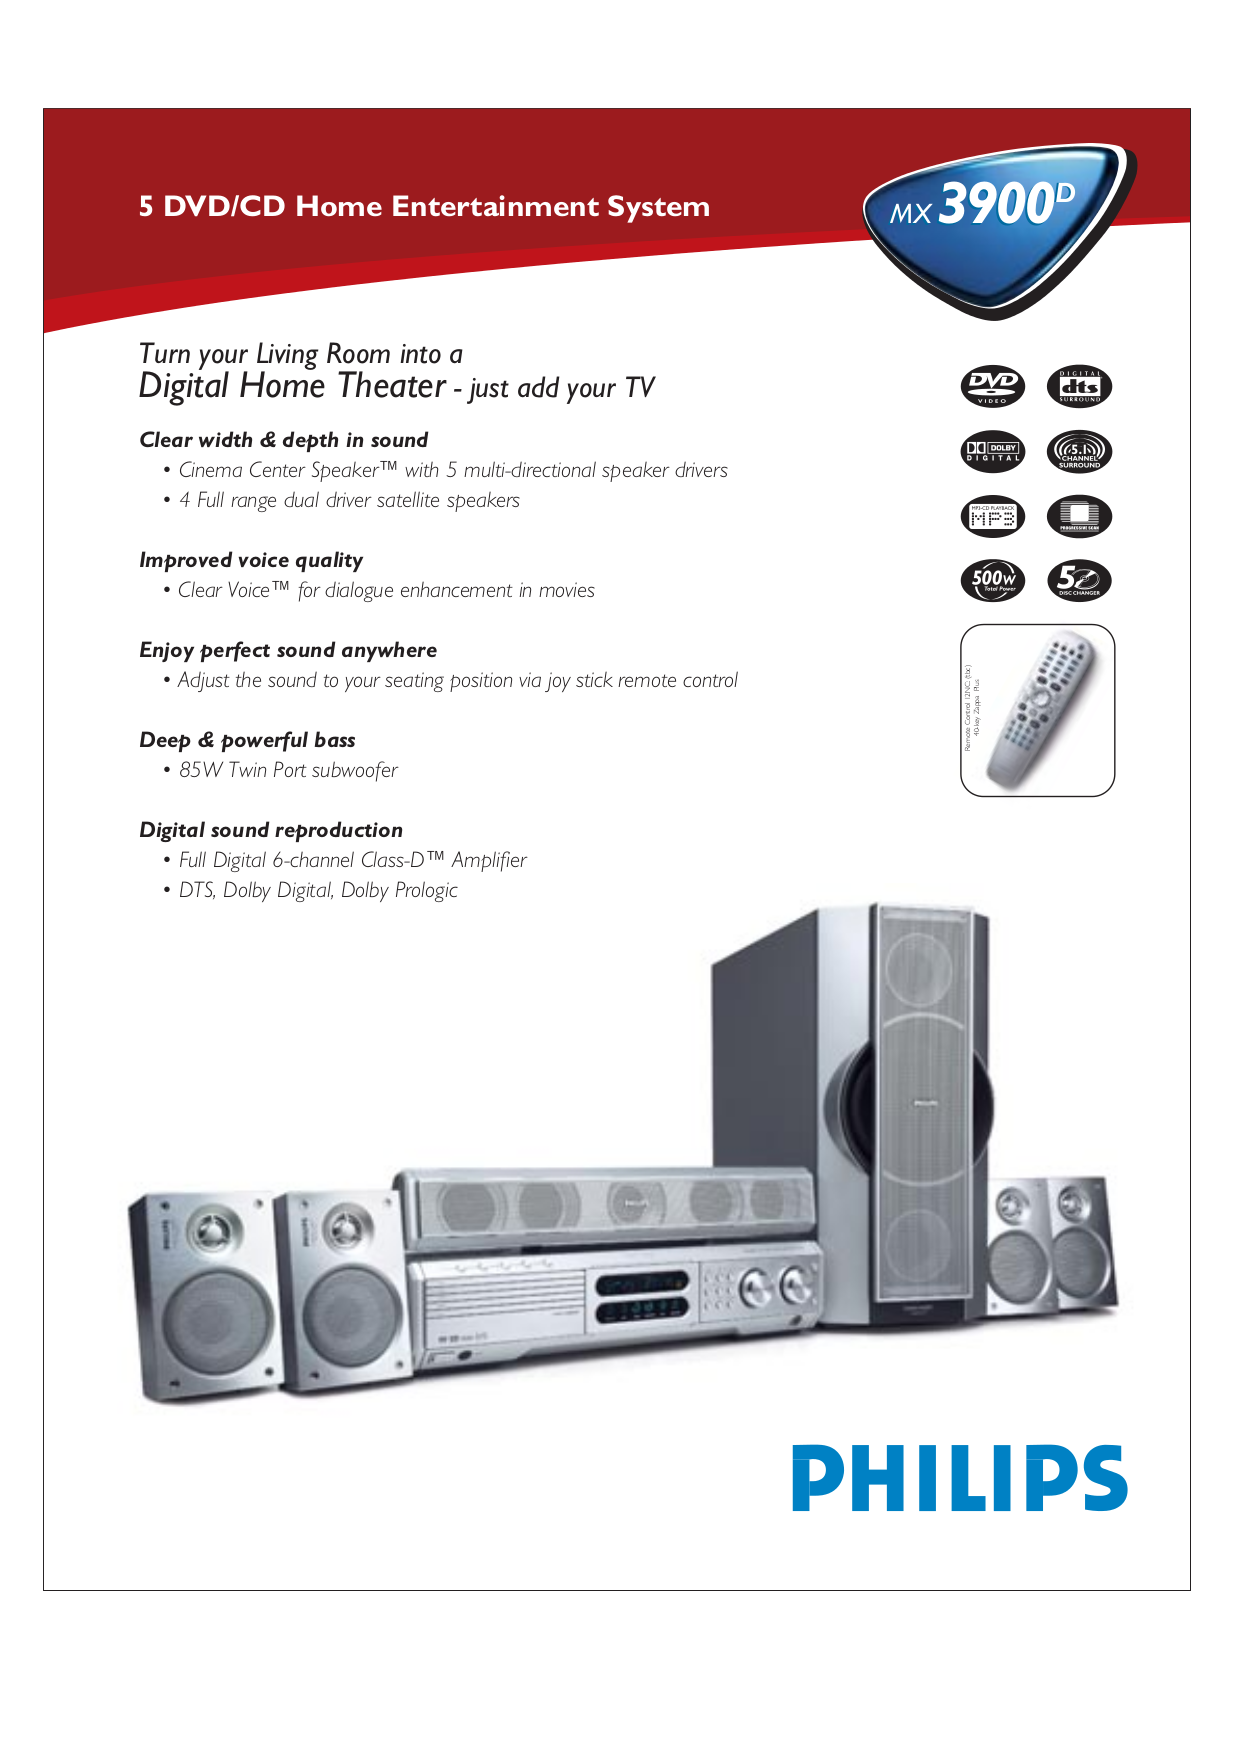 download free pdf for philips mx3900d home theater manual rh umlib com Philips Television Philips Electronics Manuals